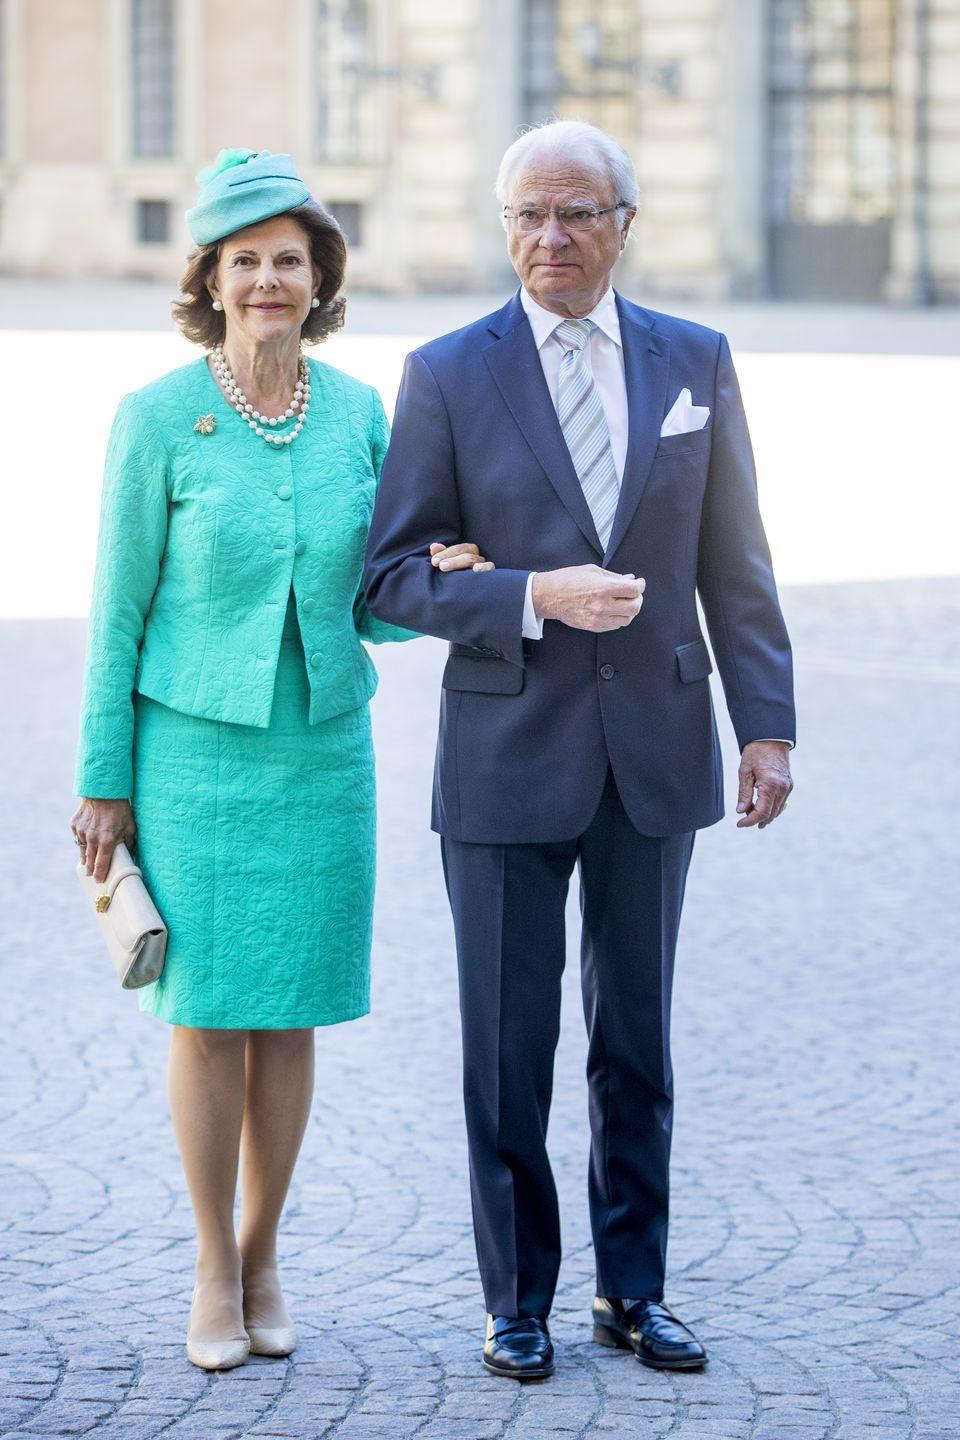 <p>King Carl XVI Gustaf of Sweden married Sommerlath (a trained interpreter who speaks SIX languages) in 1976 after meeting at the 1972 Summer Olympics in Germany. </p>